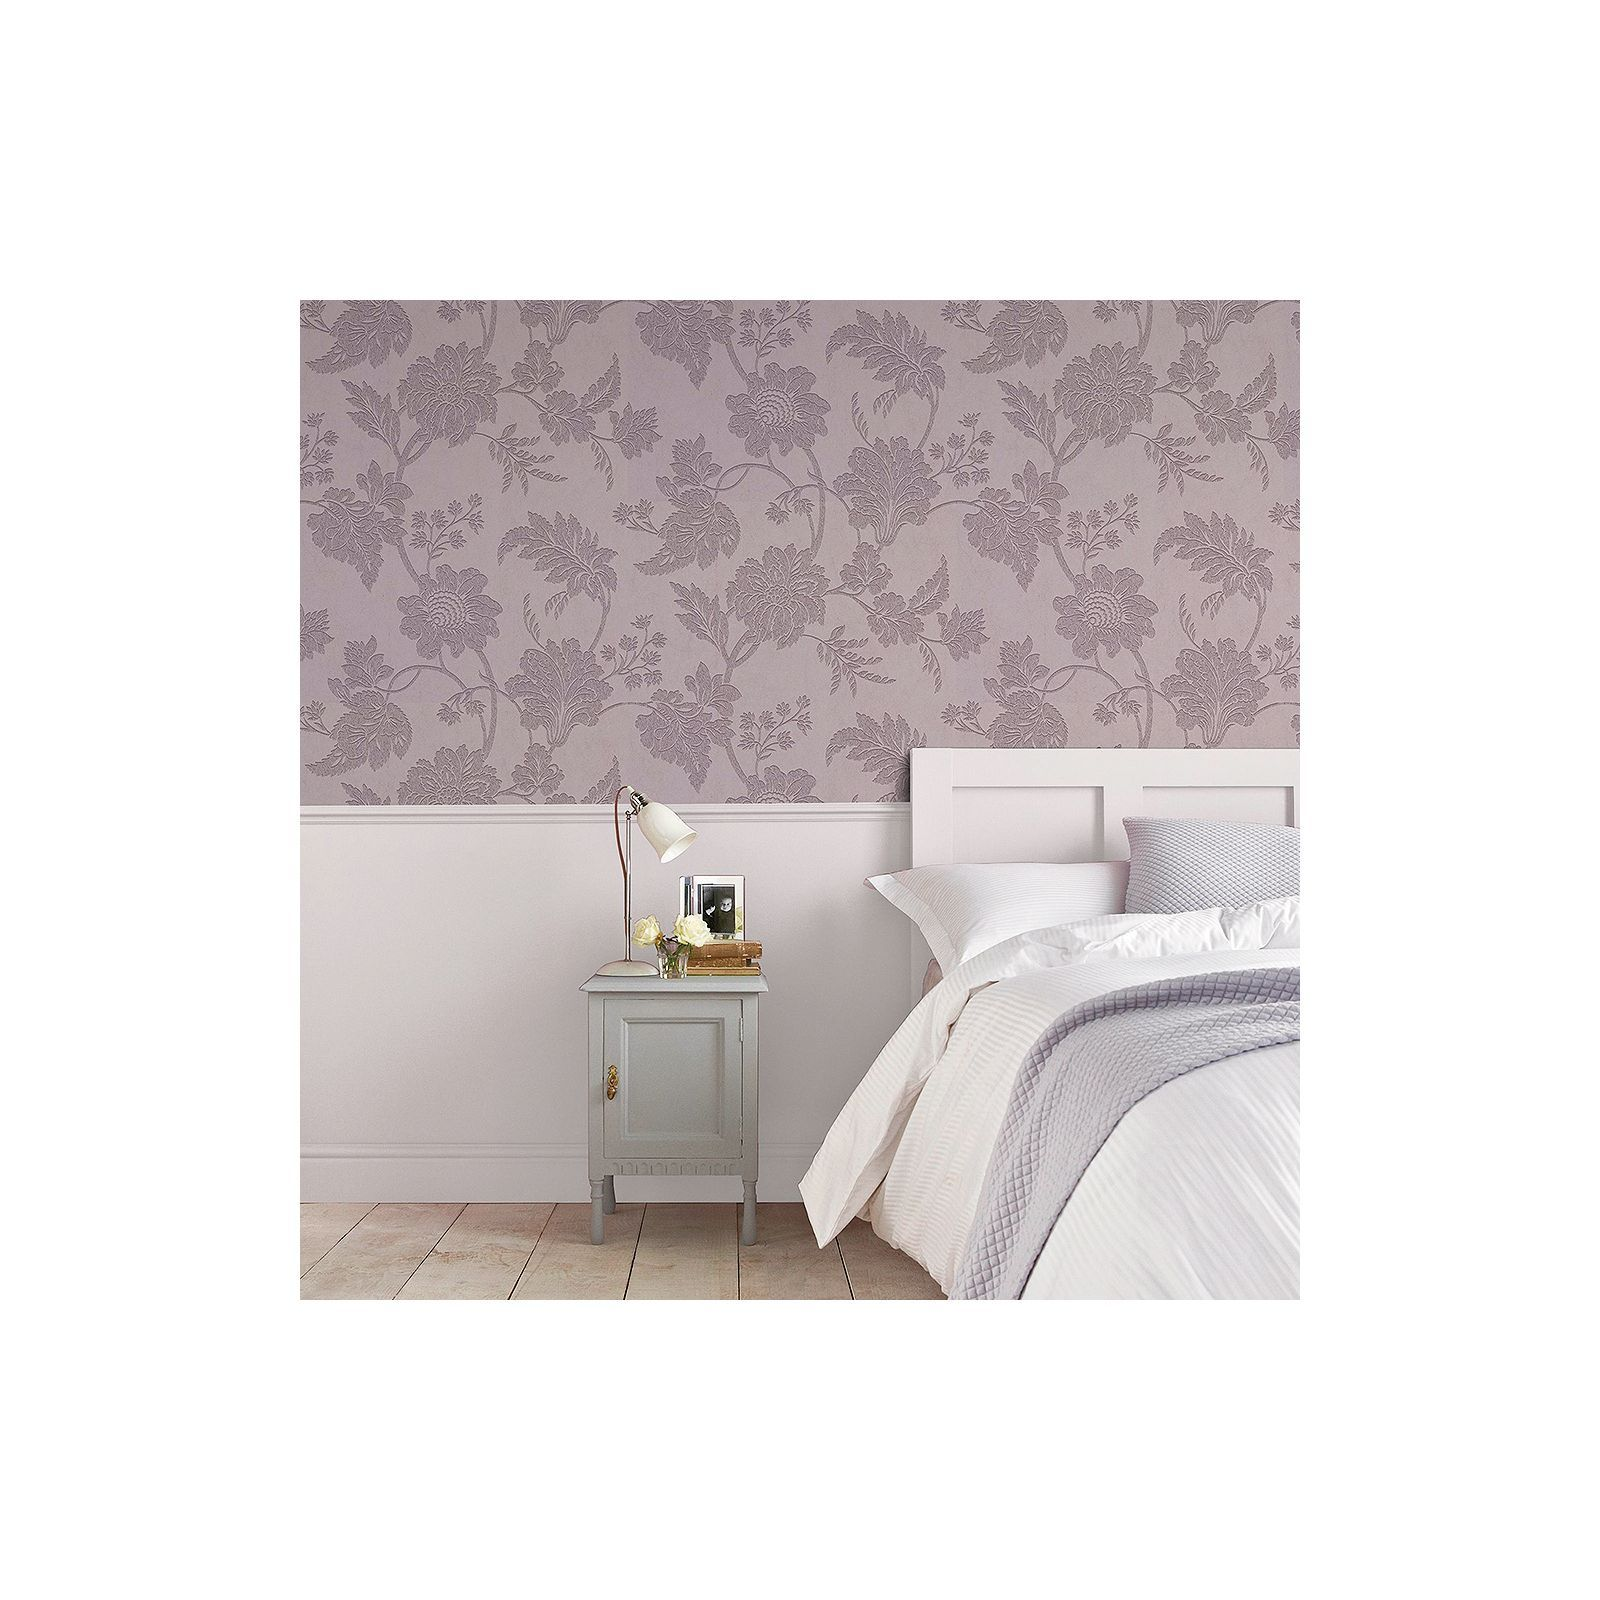 Graham & Brown Artisan Paste the Wall Mystique Mulberry Wallpaper at